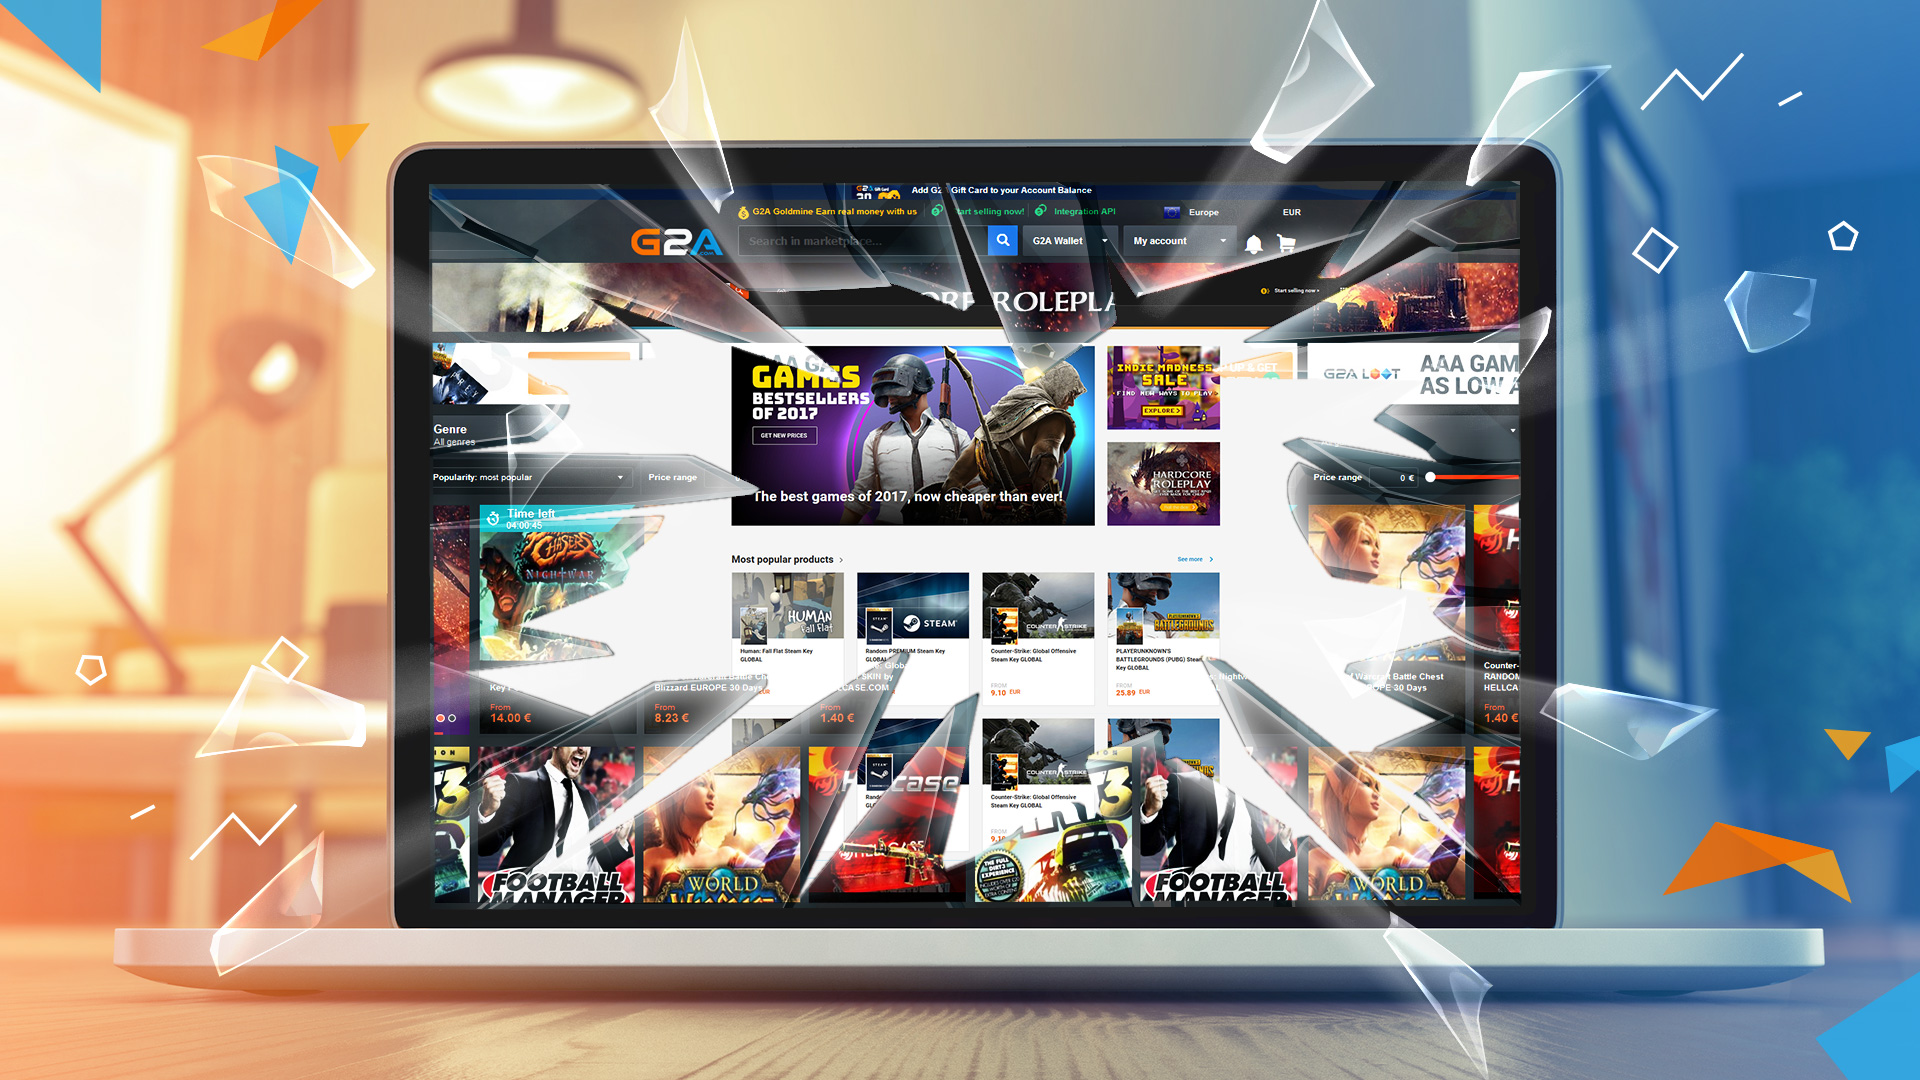 G2A.COM enters 2018 redesigned and reinspired